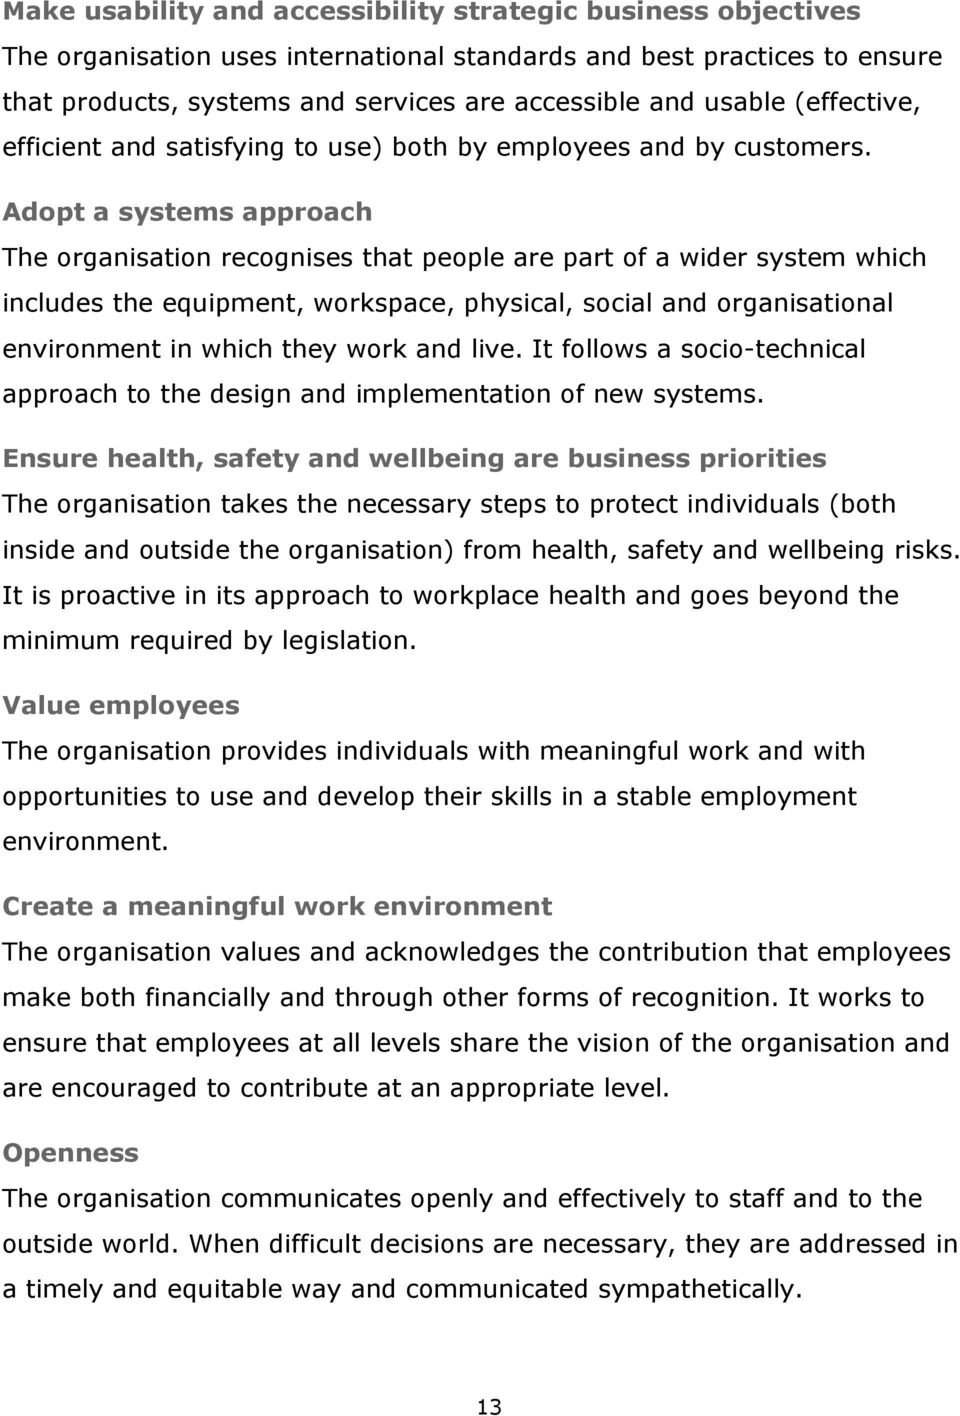 Adopt a systems approach The organisation recognises that people are part of a wider system which includes the equipment, workspace, physical, social and organisational environment in which they work